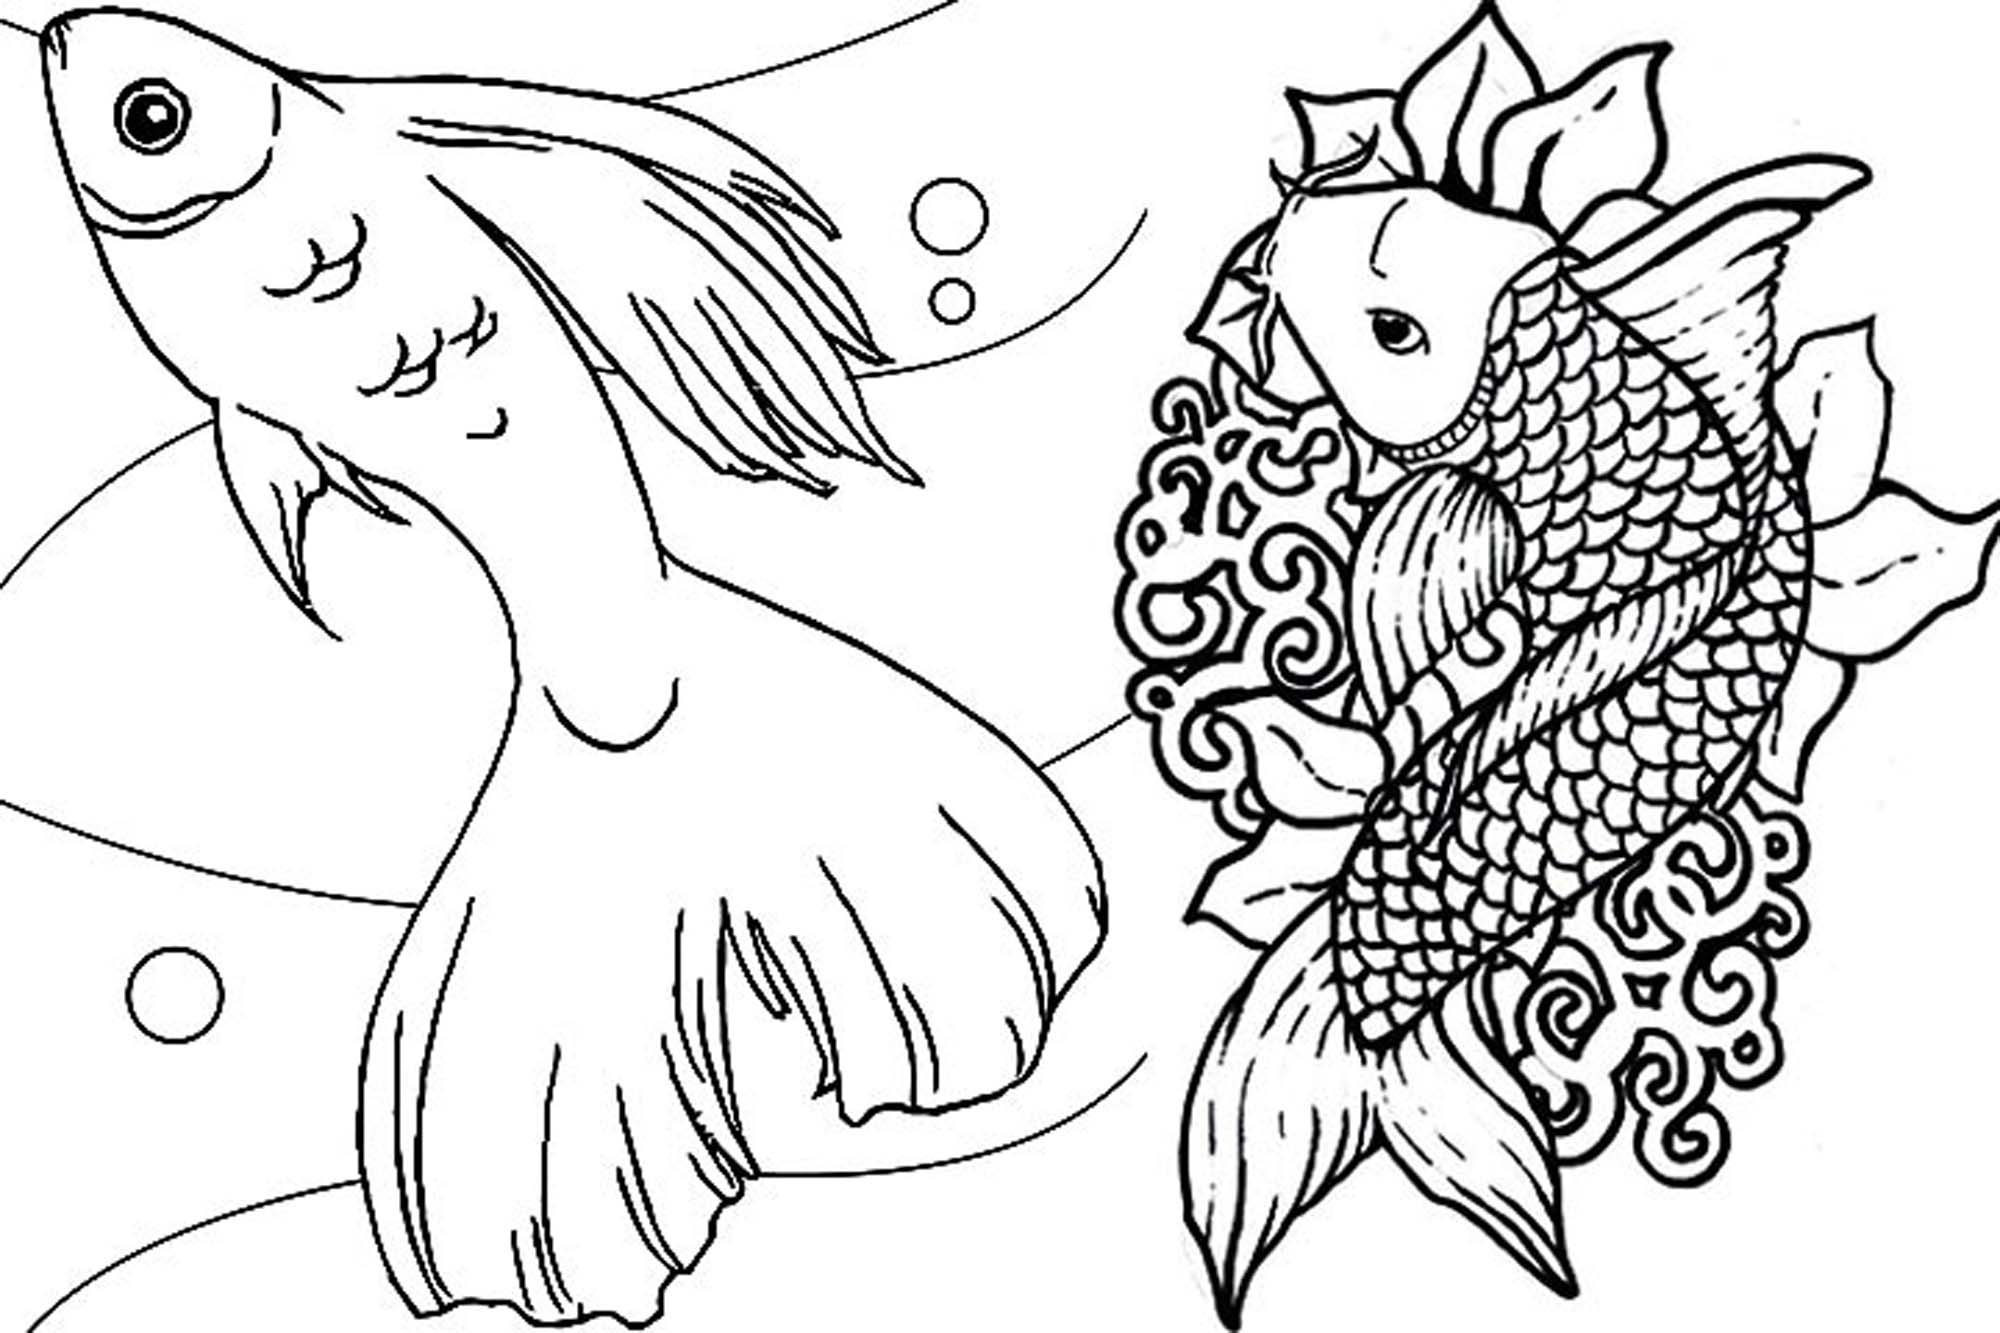 coloring pages for fish free printable fish coloring pages for kids cool2bkids fish pages for coloring